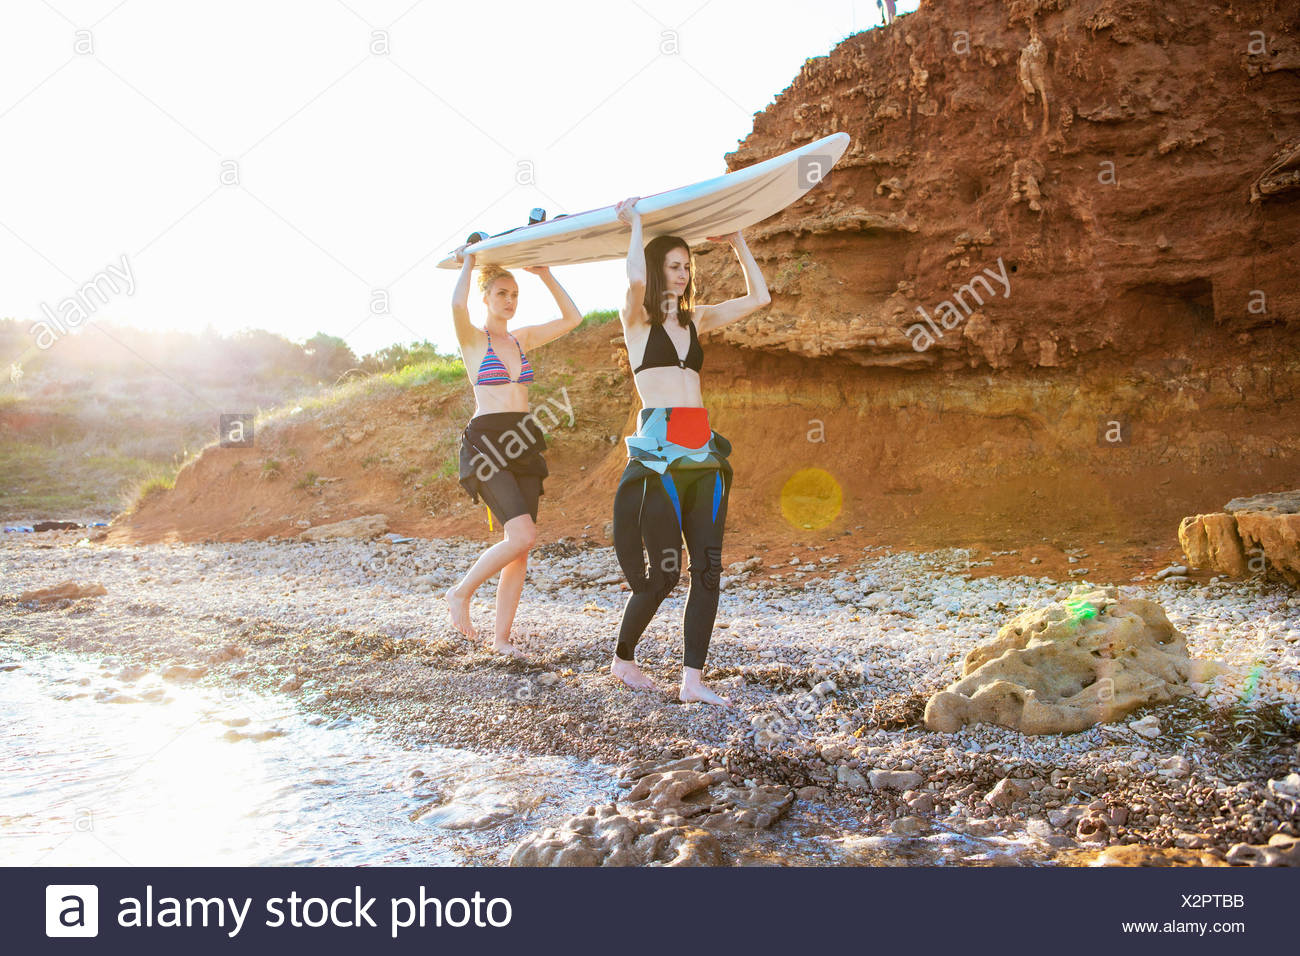 Les surfers carrying surfboard Photo Stock